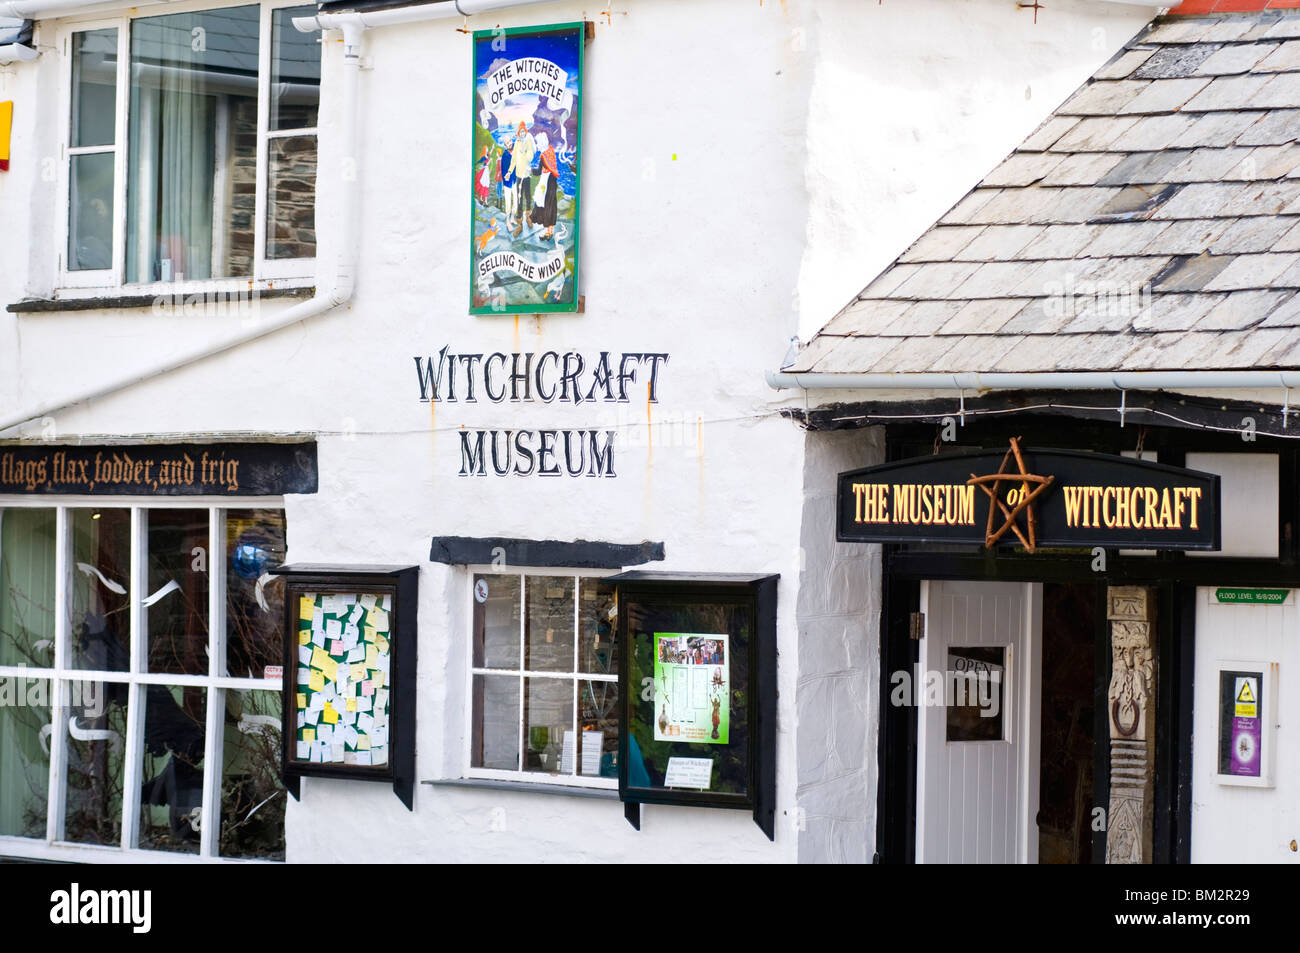 Exterior of the Museum of Witchcraft in the village of Boscastle, Cornwall, England, UK - Stock Image